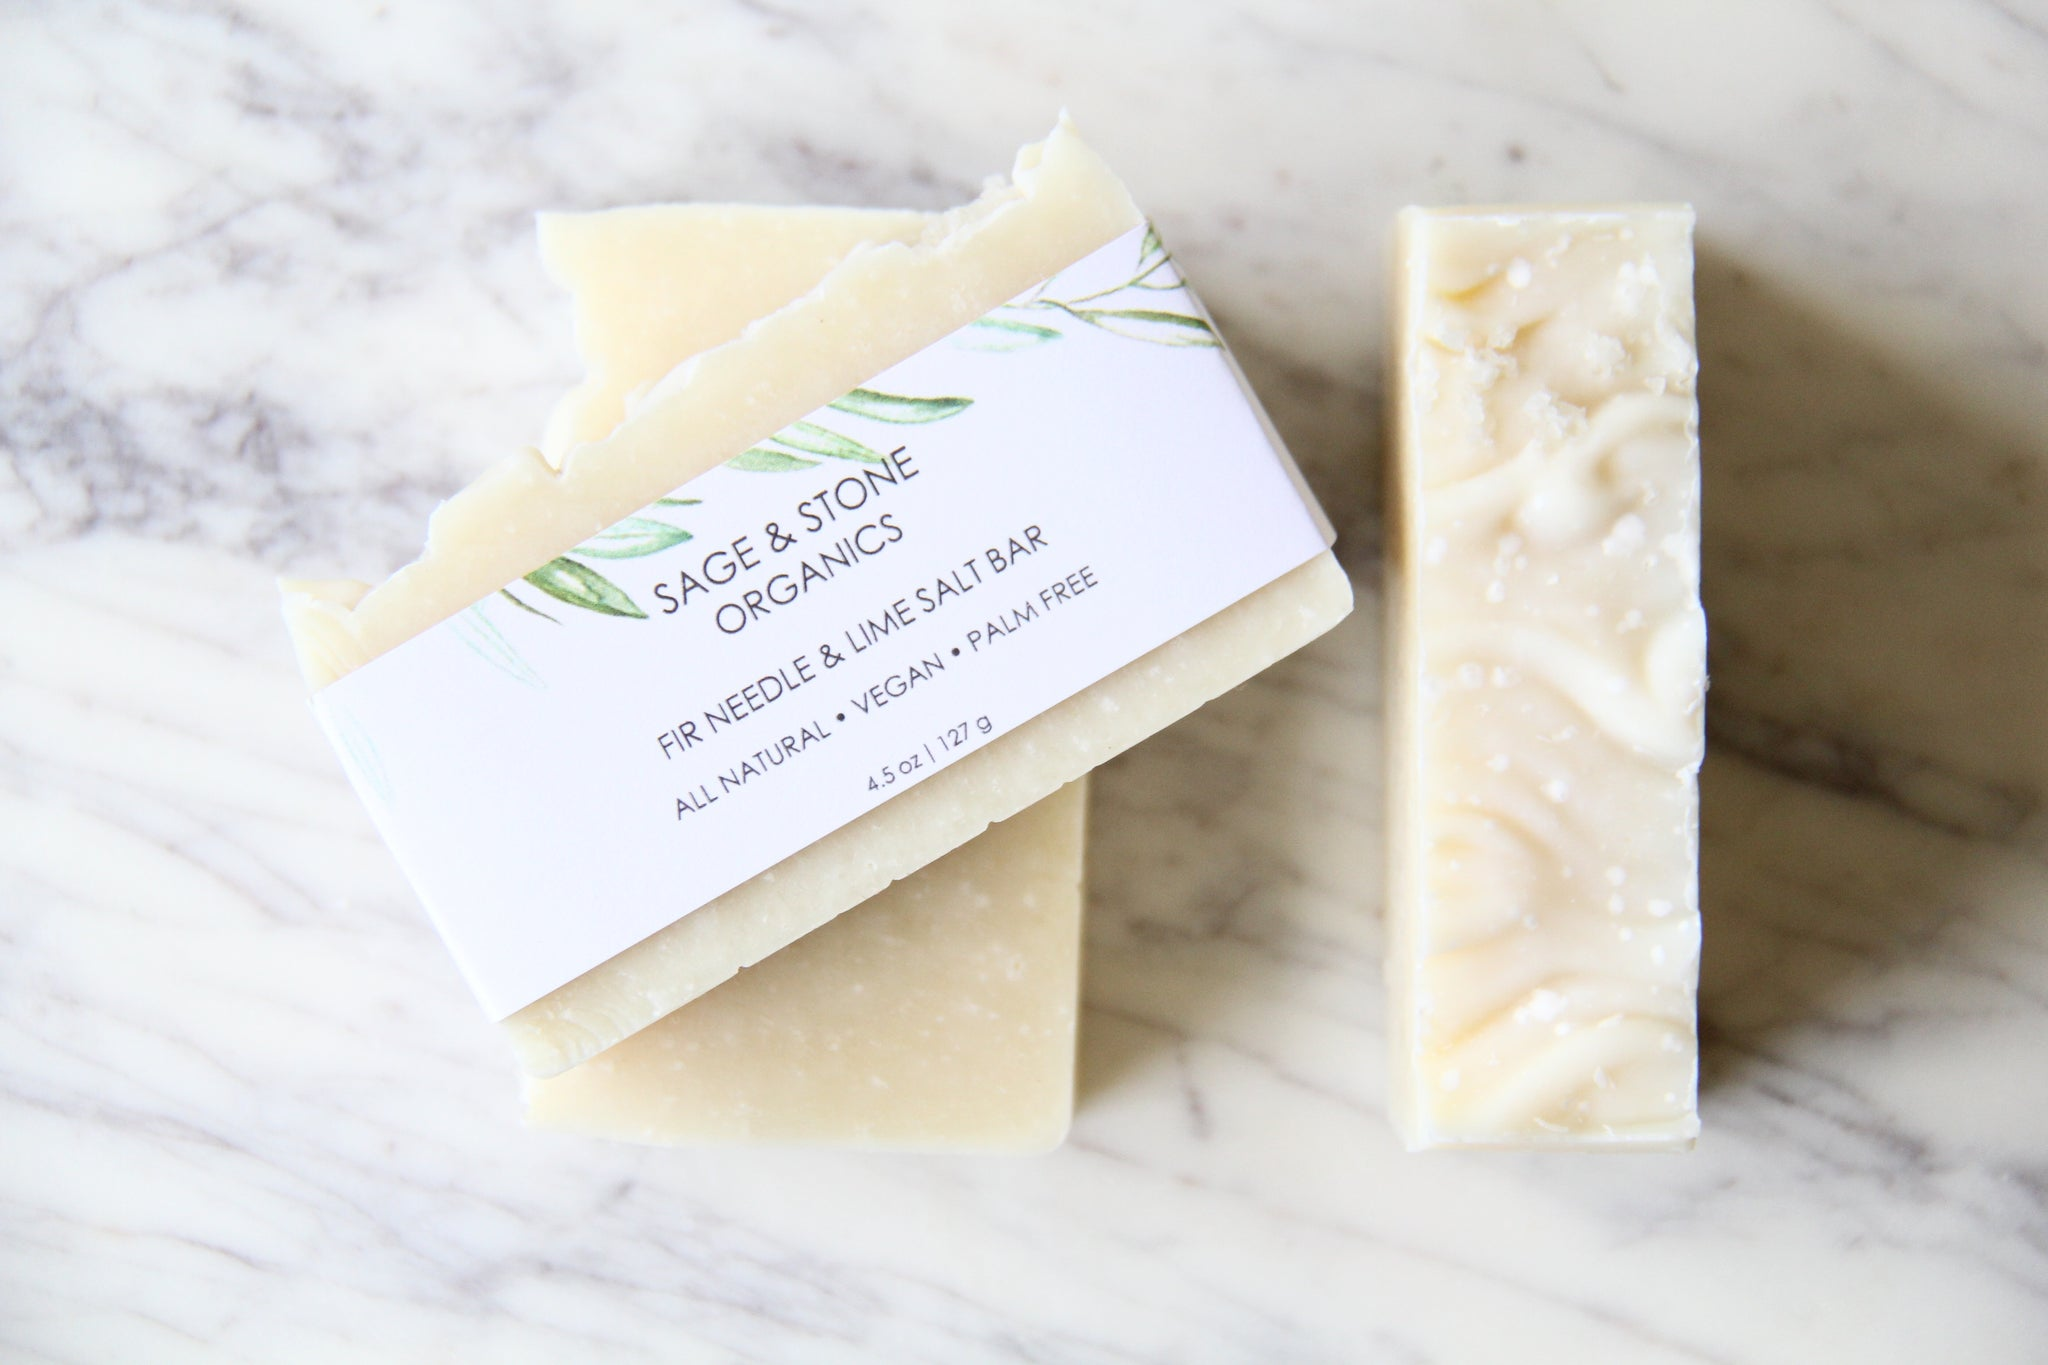 Fir Needle, Clary Sage & Lime Salt Bar Soap